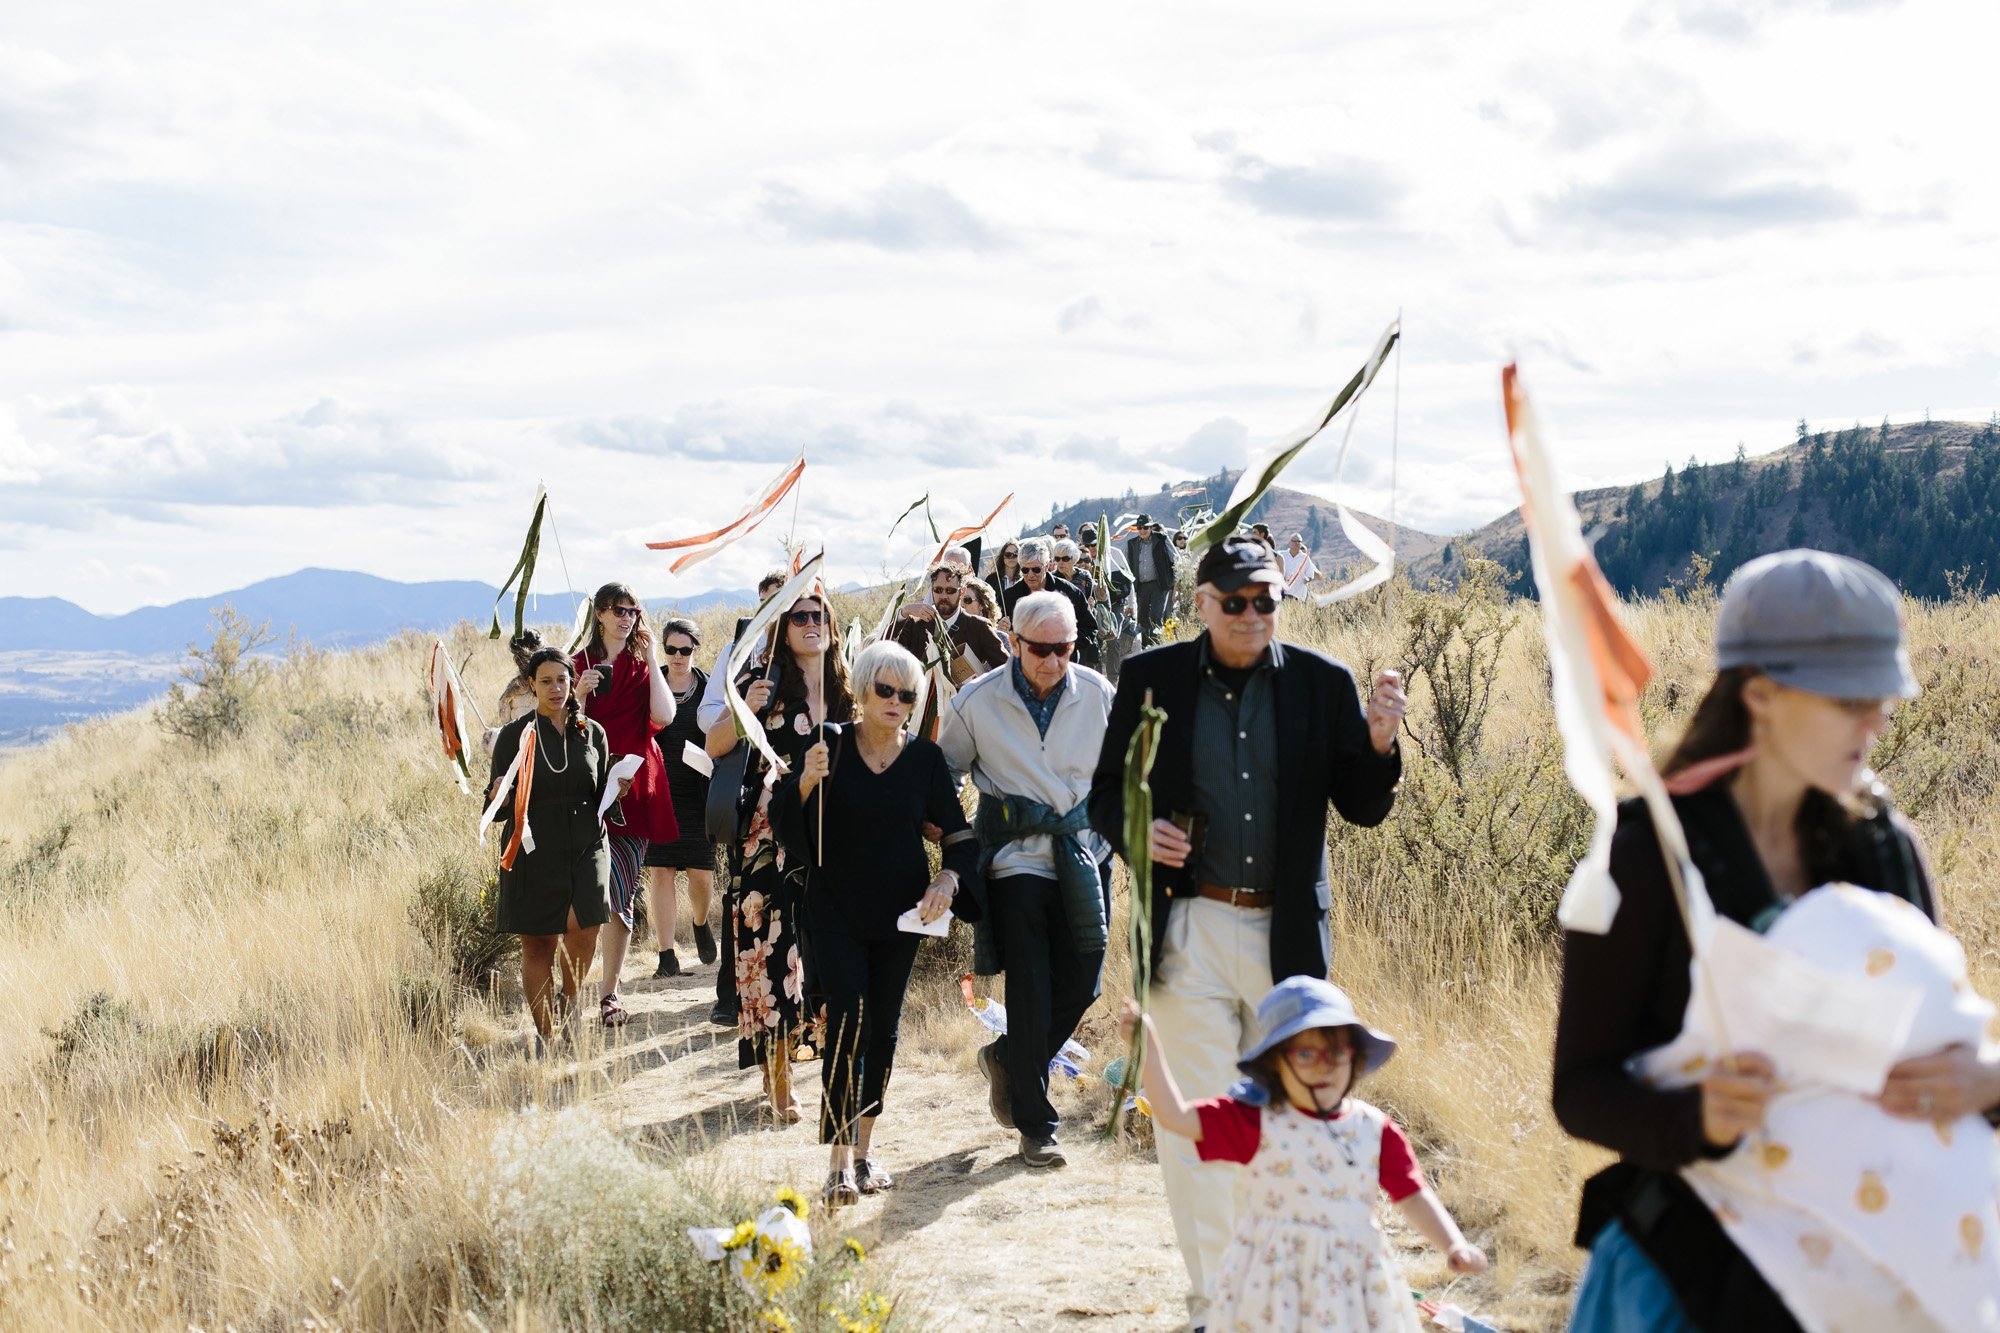 Processional down the mountain on foot with music after the ceremony